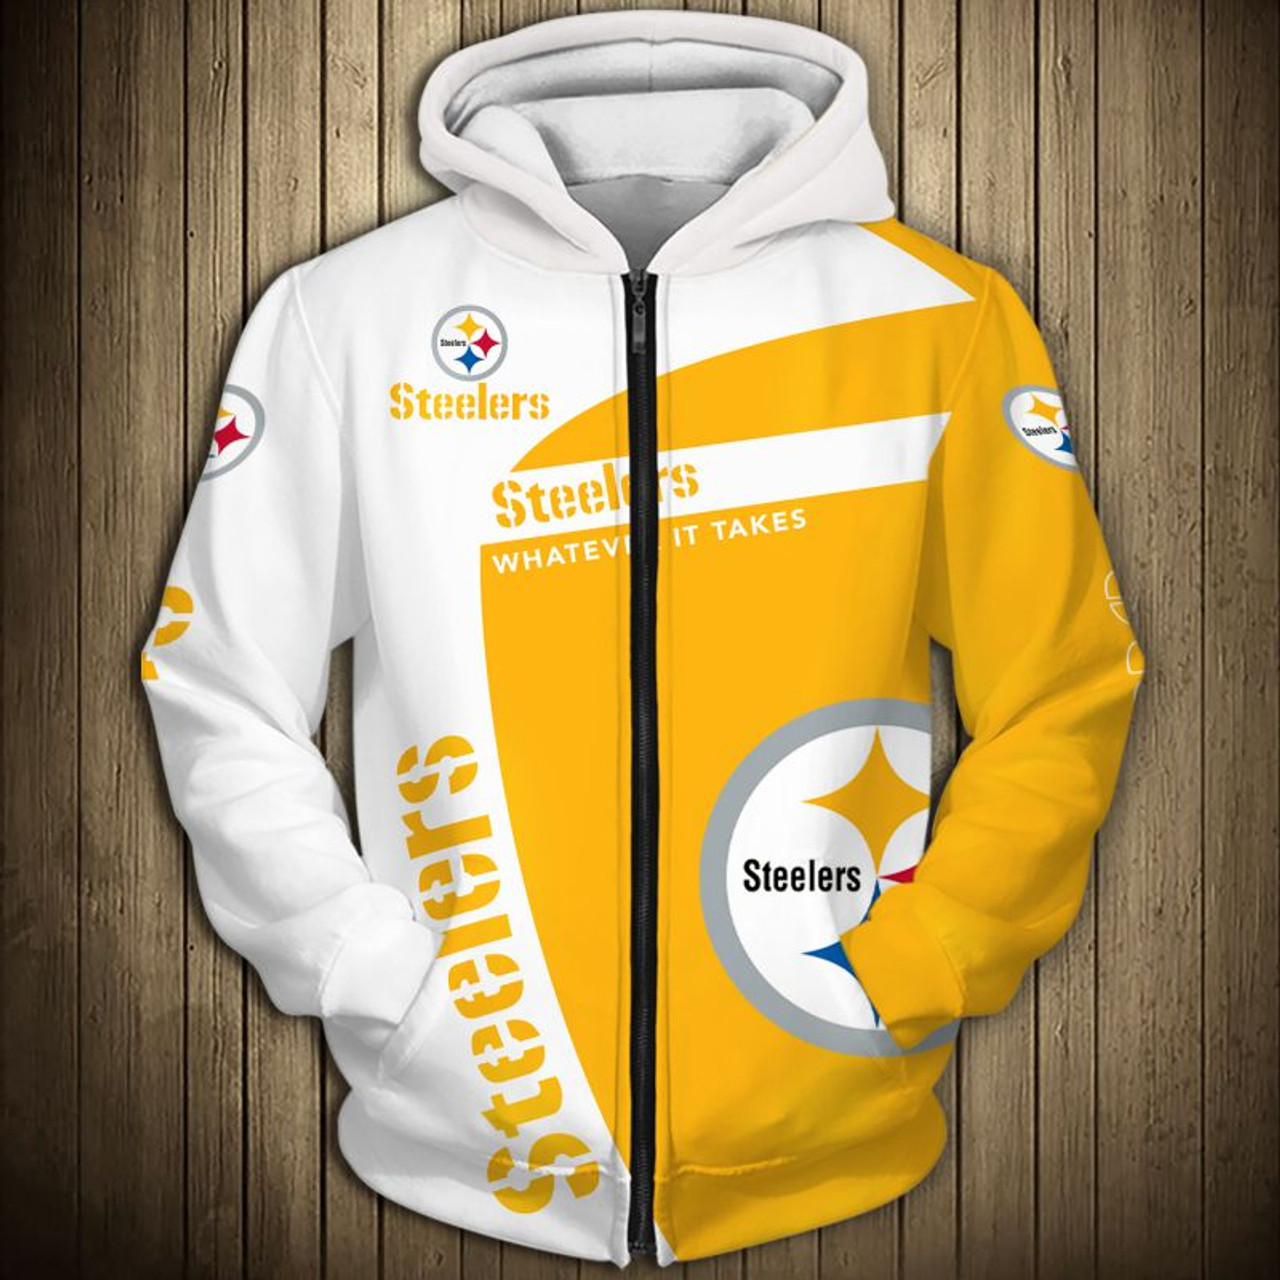 new arrivals 4f297 fd8fb **(OFFICIAL-N.F.L.PITTSBURGH-STEELERS-ZIPPERED-HOODIES/3D-CUSTOM-STEELERS-LOGOS  & OFFICIAL-STEELERS-TEAM-COLORS/NICE-3D-DETAILED-GRAPHIC-PRINTED-DOUBL...